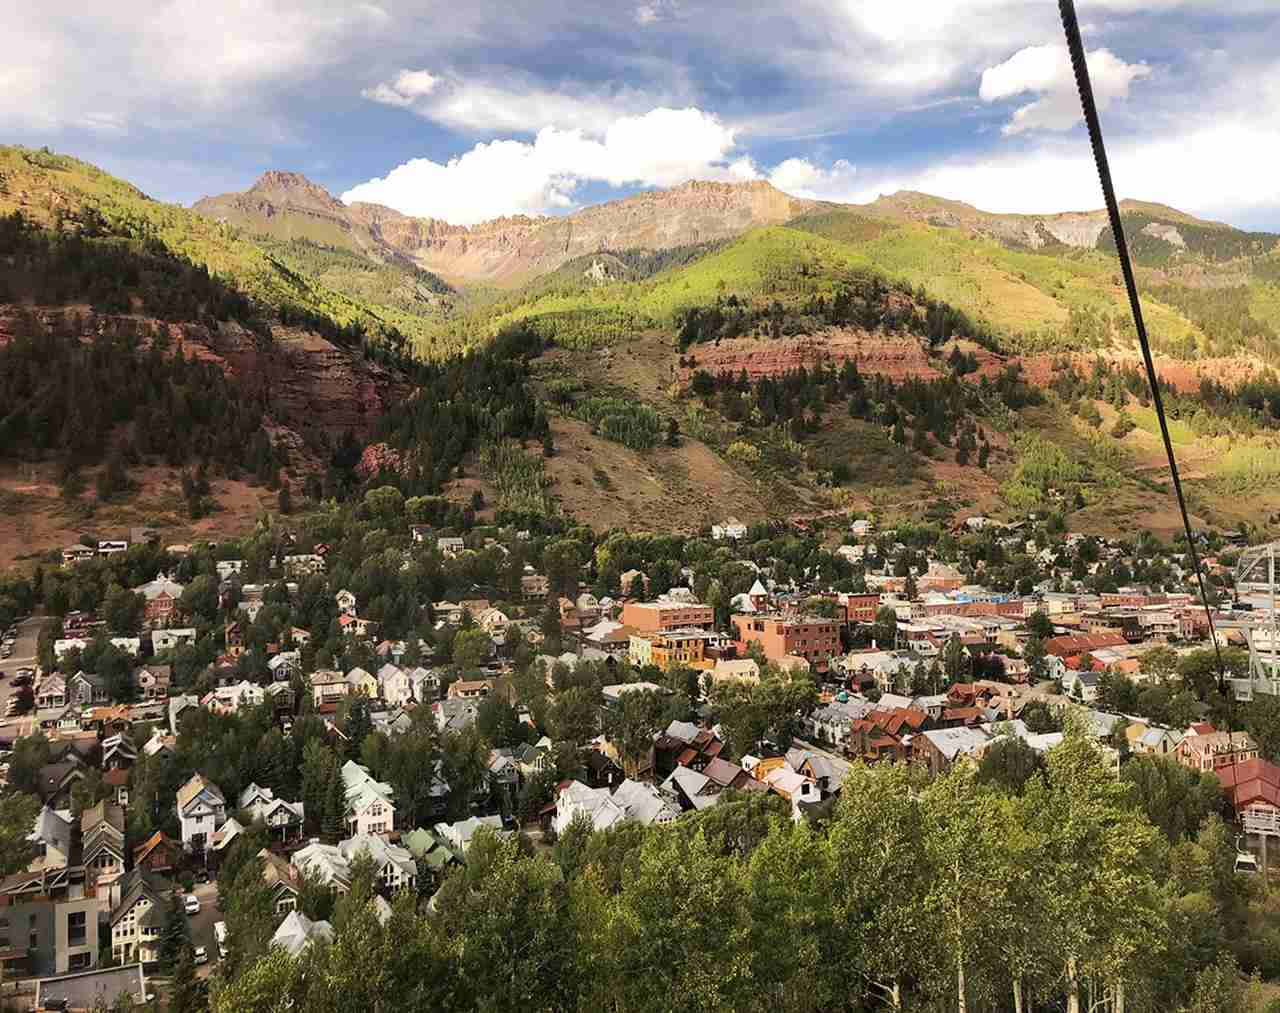 View from the Telluride gondola